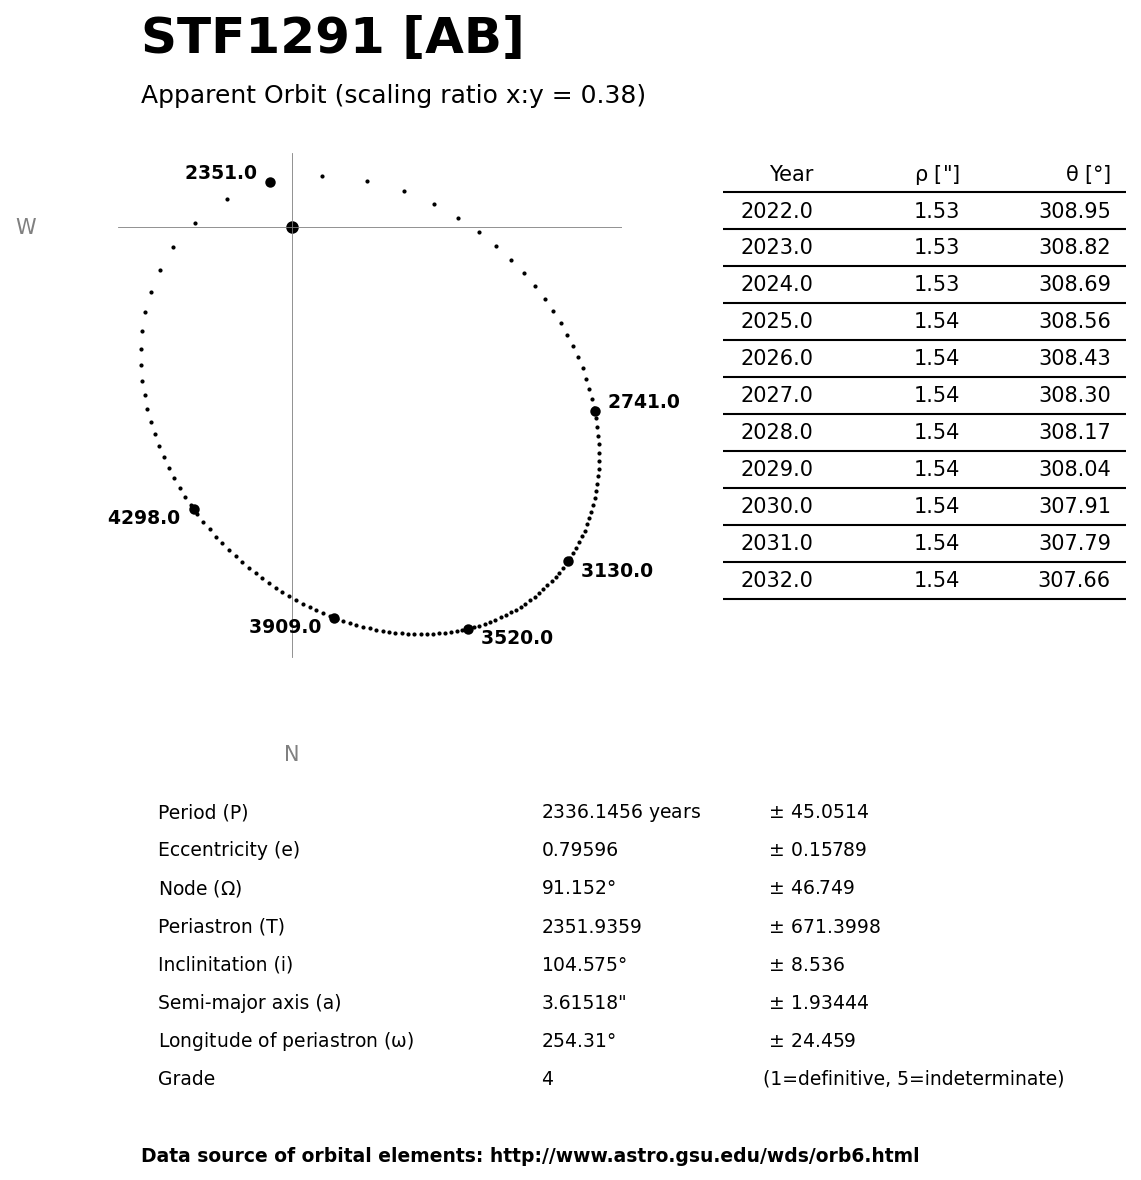 ../images/binary-star-orbits/STF1291-AB-orbit.jpg